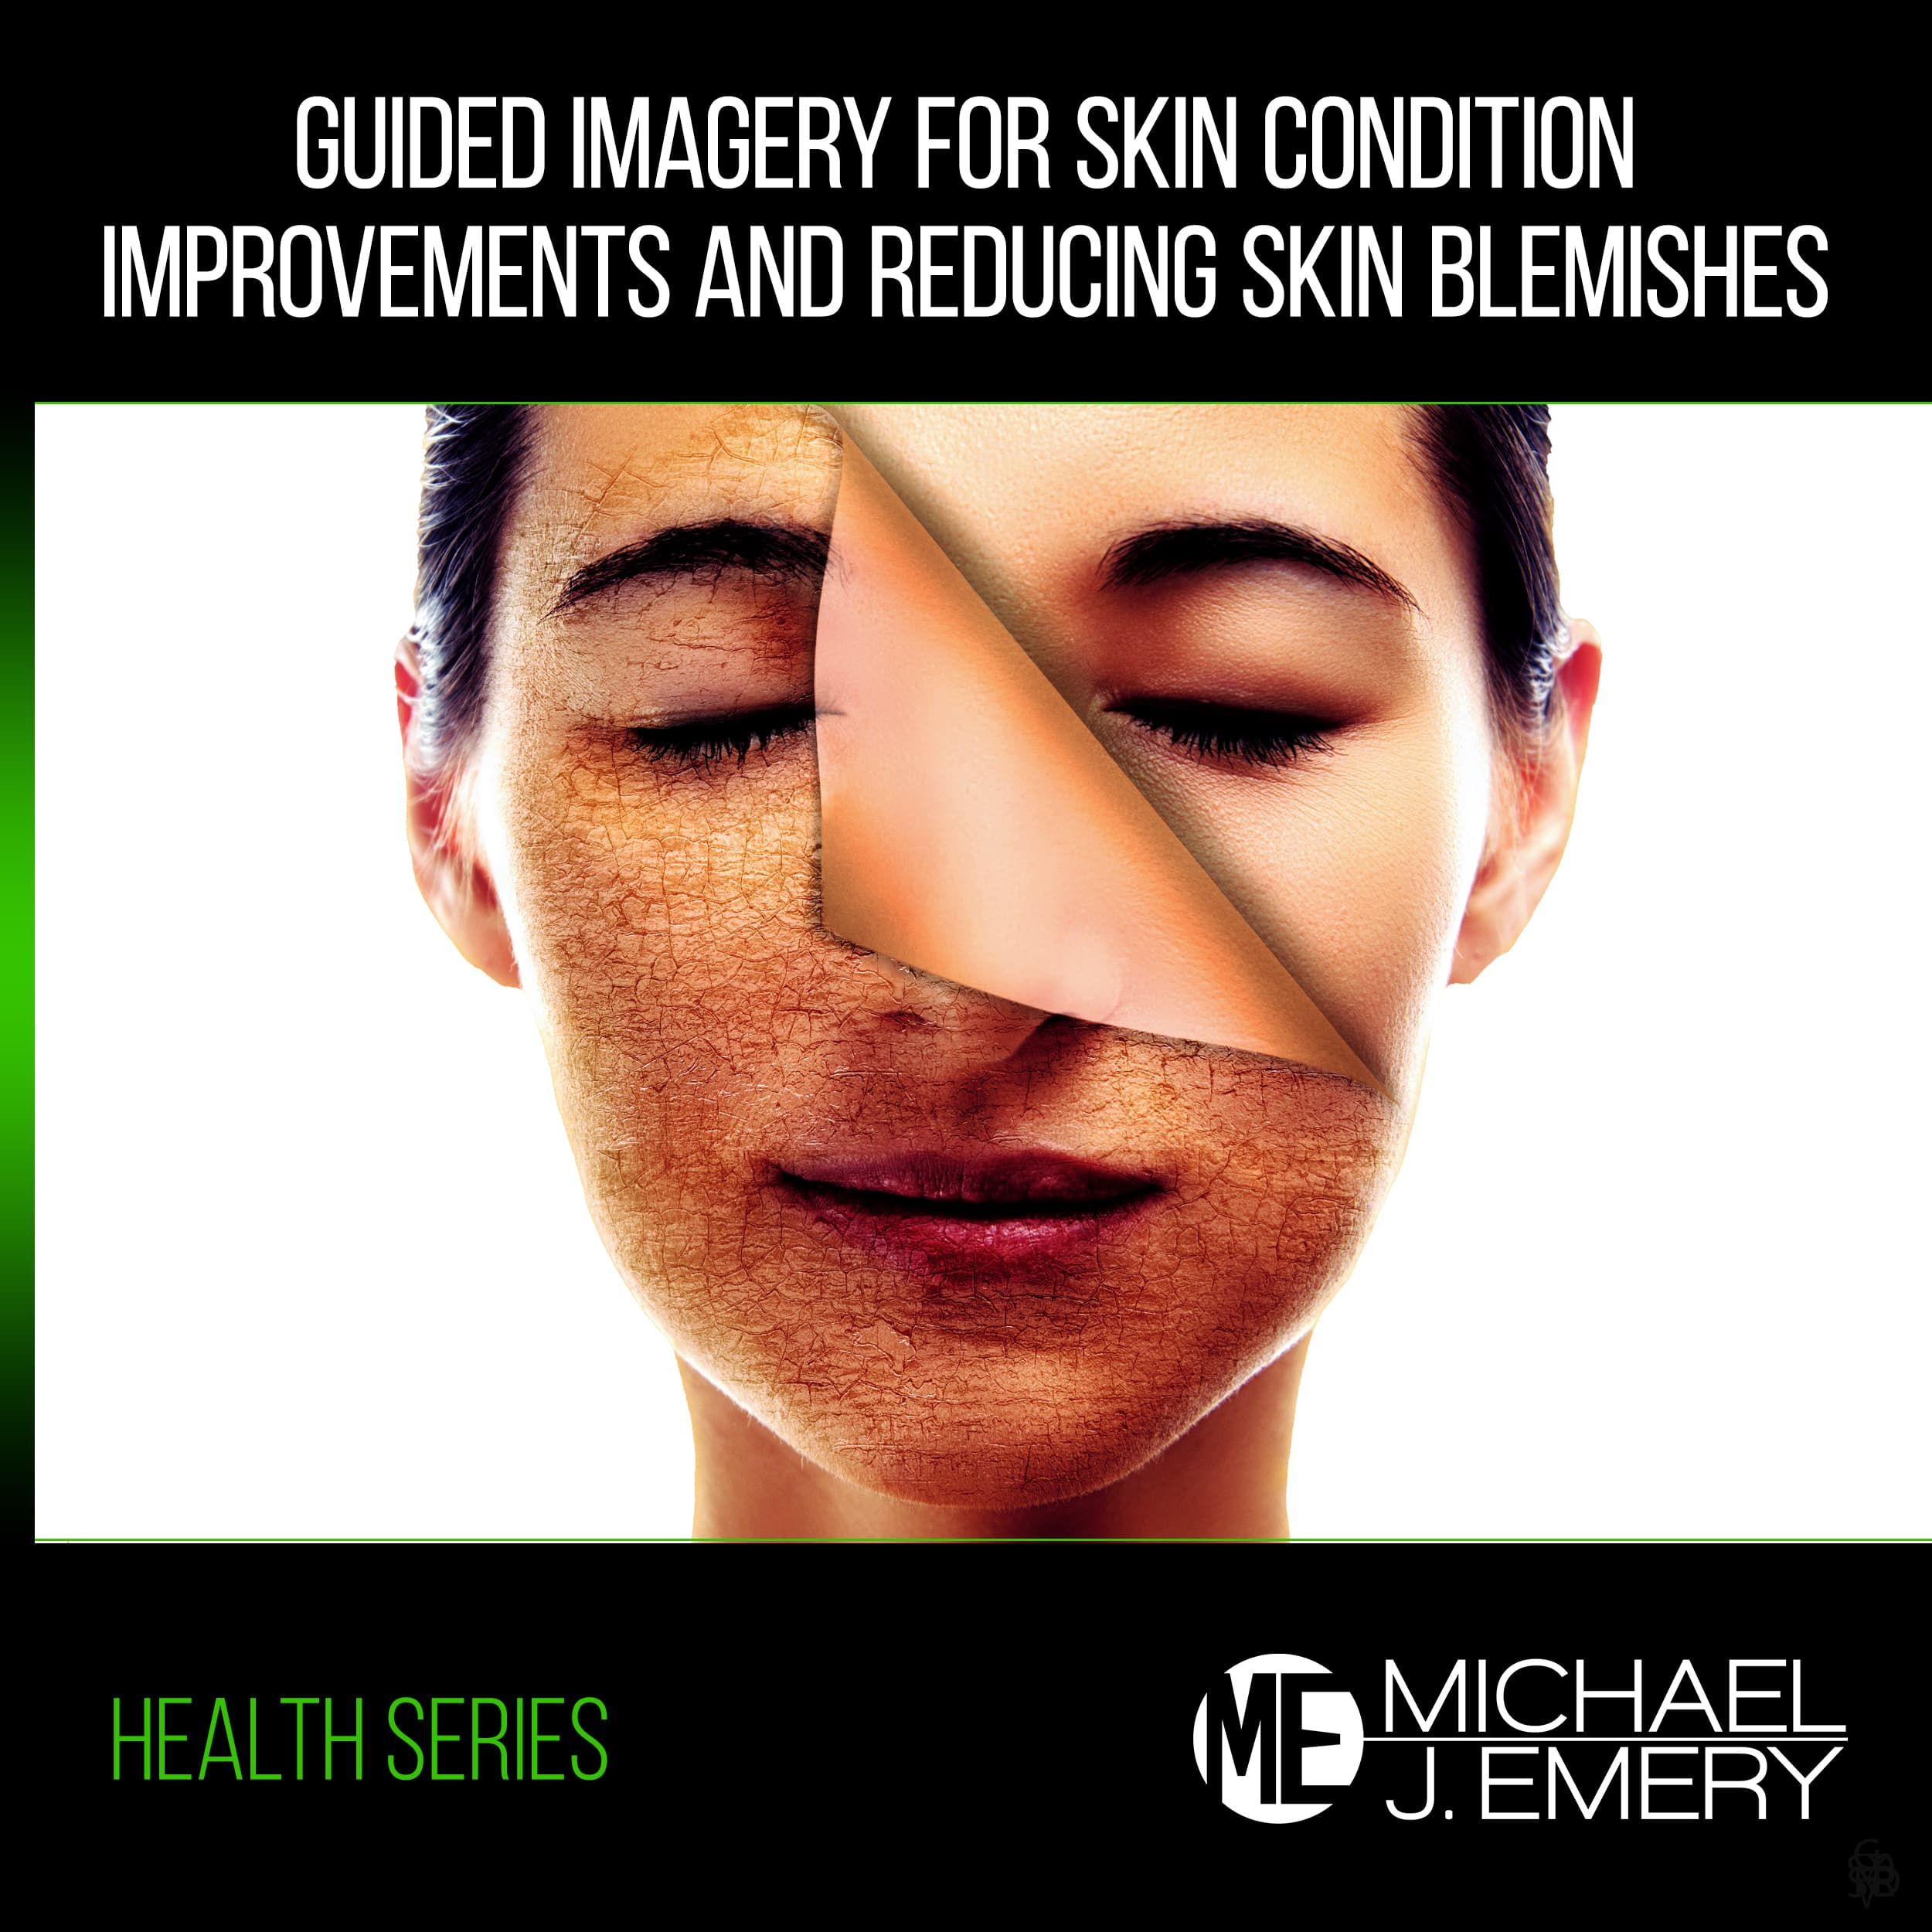 Guided-Imagery-for-Skin-Condition-Improvements-and-Reducing-Skin-Blemishes